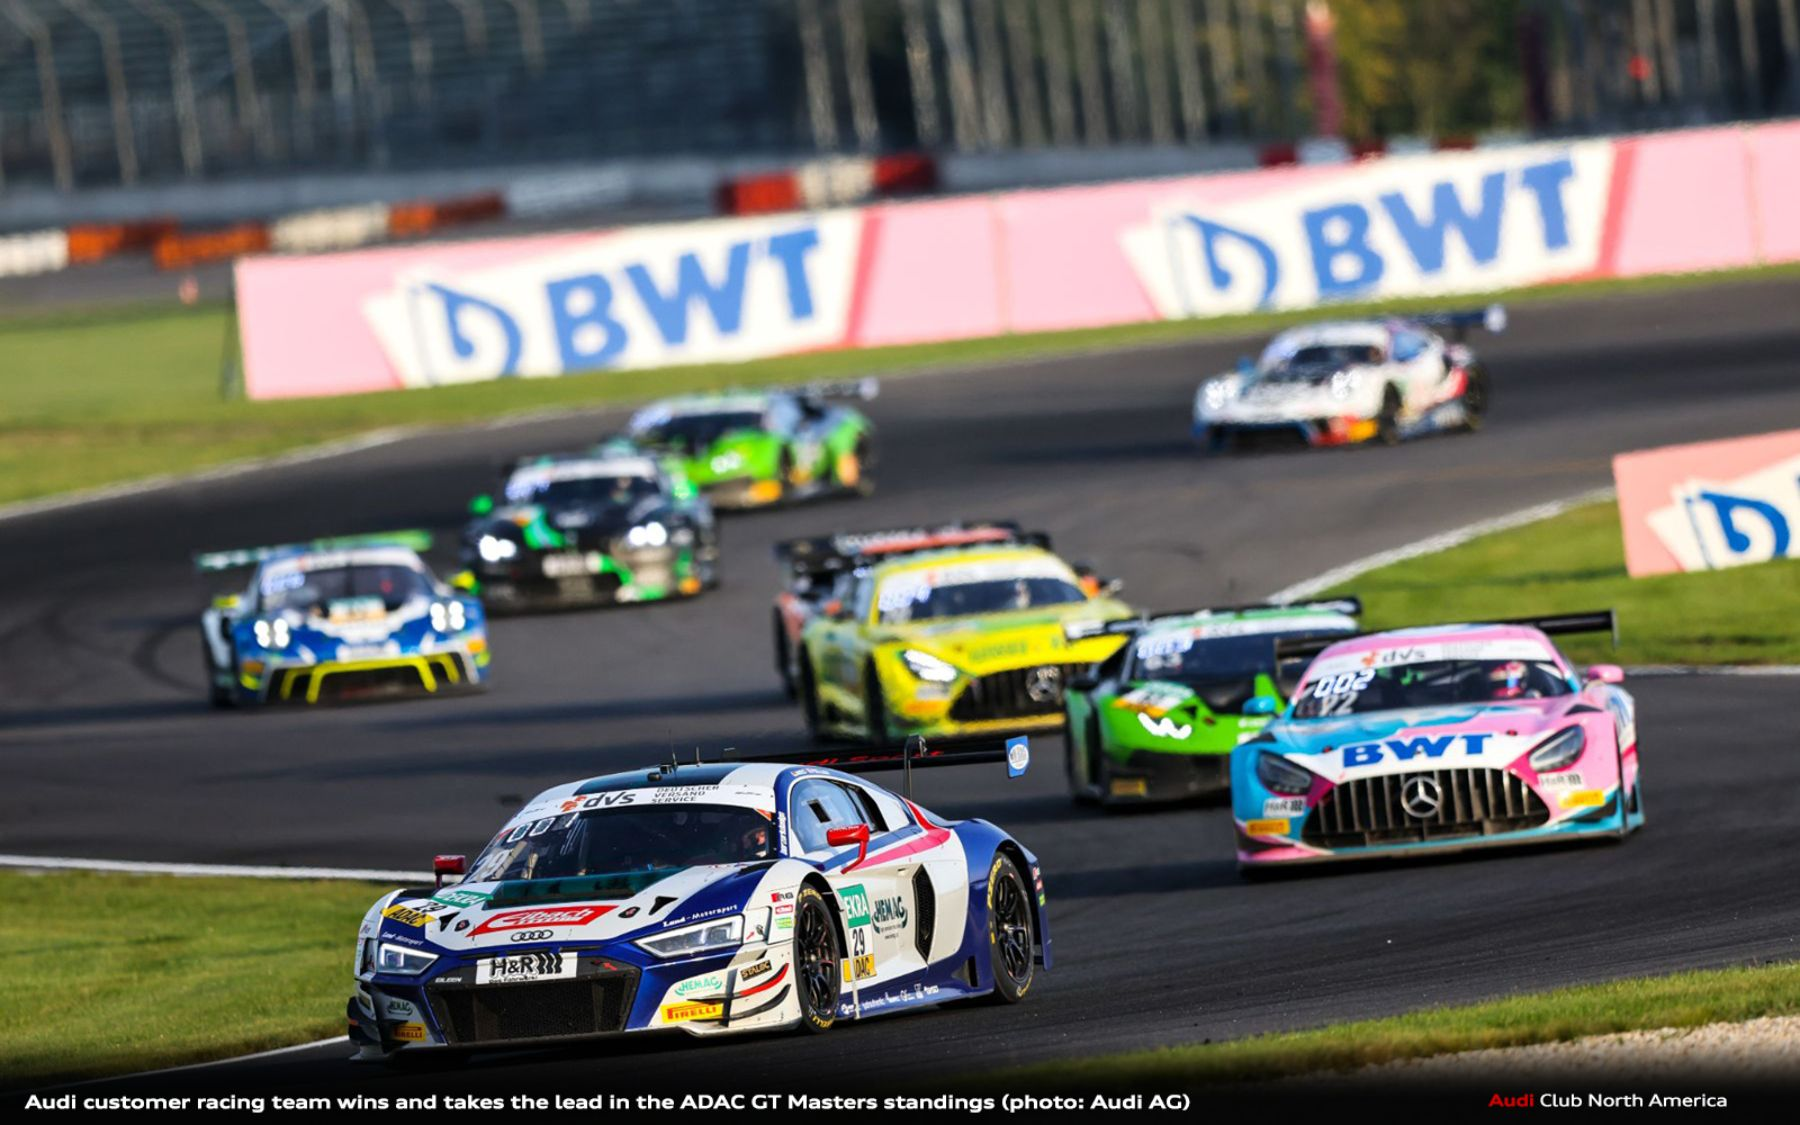 Audi customer racing Team Wins and Takes the Lead in the ADAC GT Masters Standings